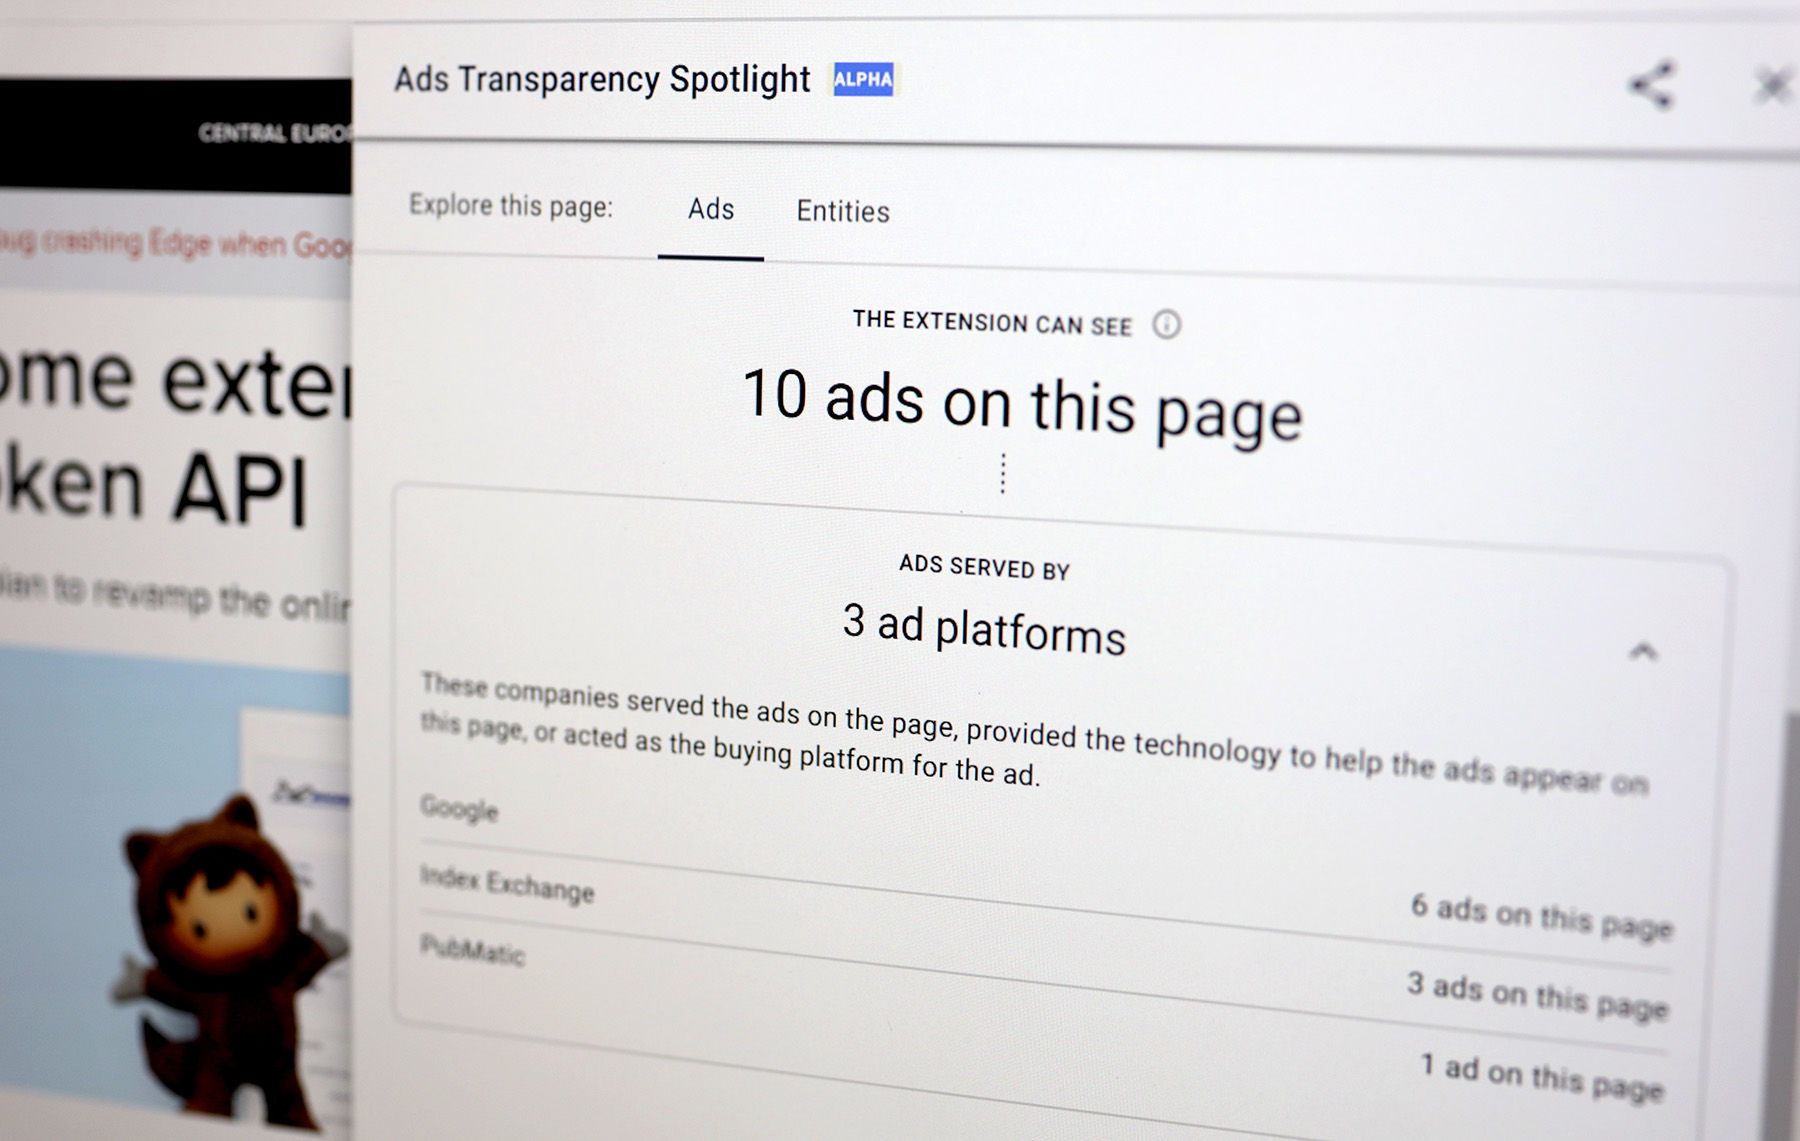 Ads Transparency Spotlight